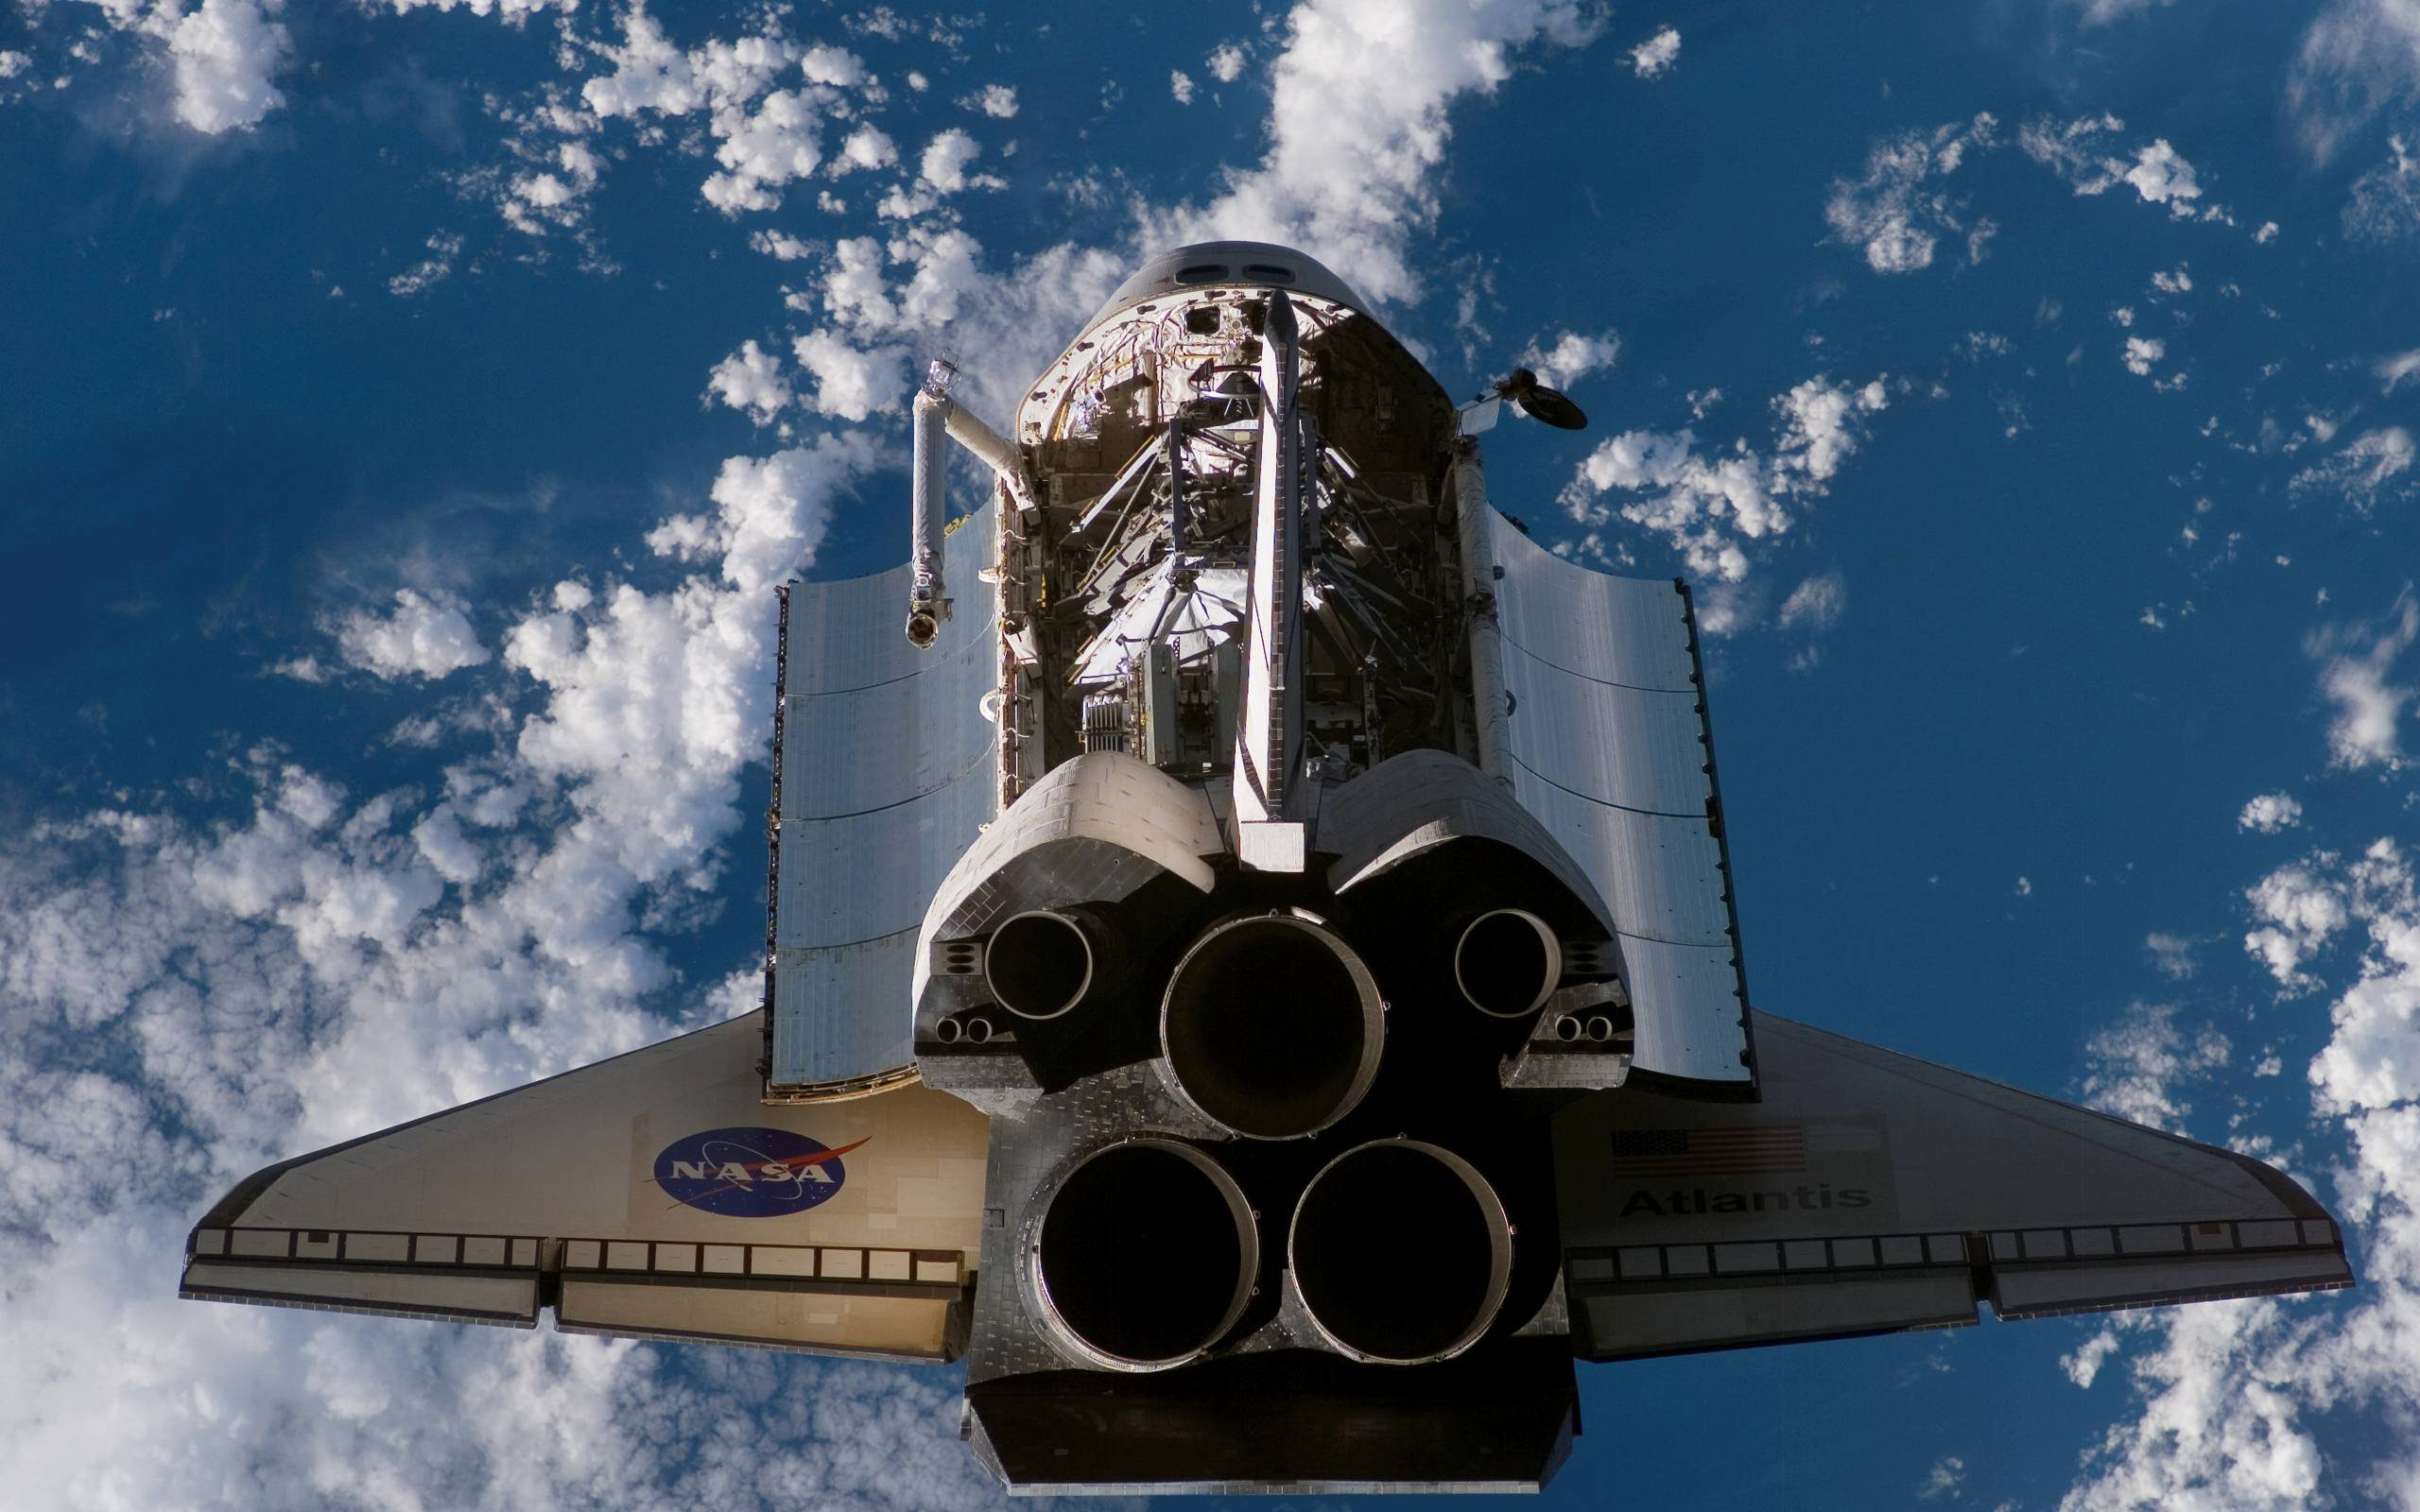 floral space shuttle - photo #11